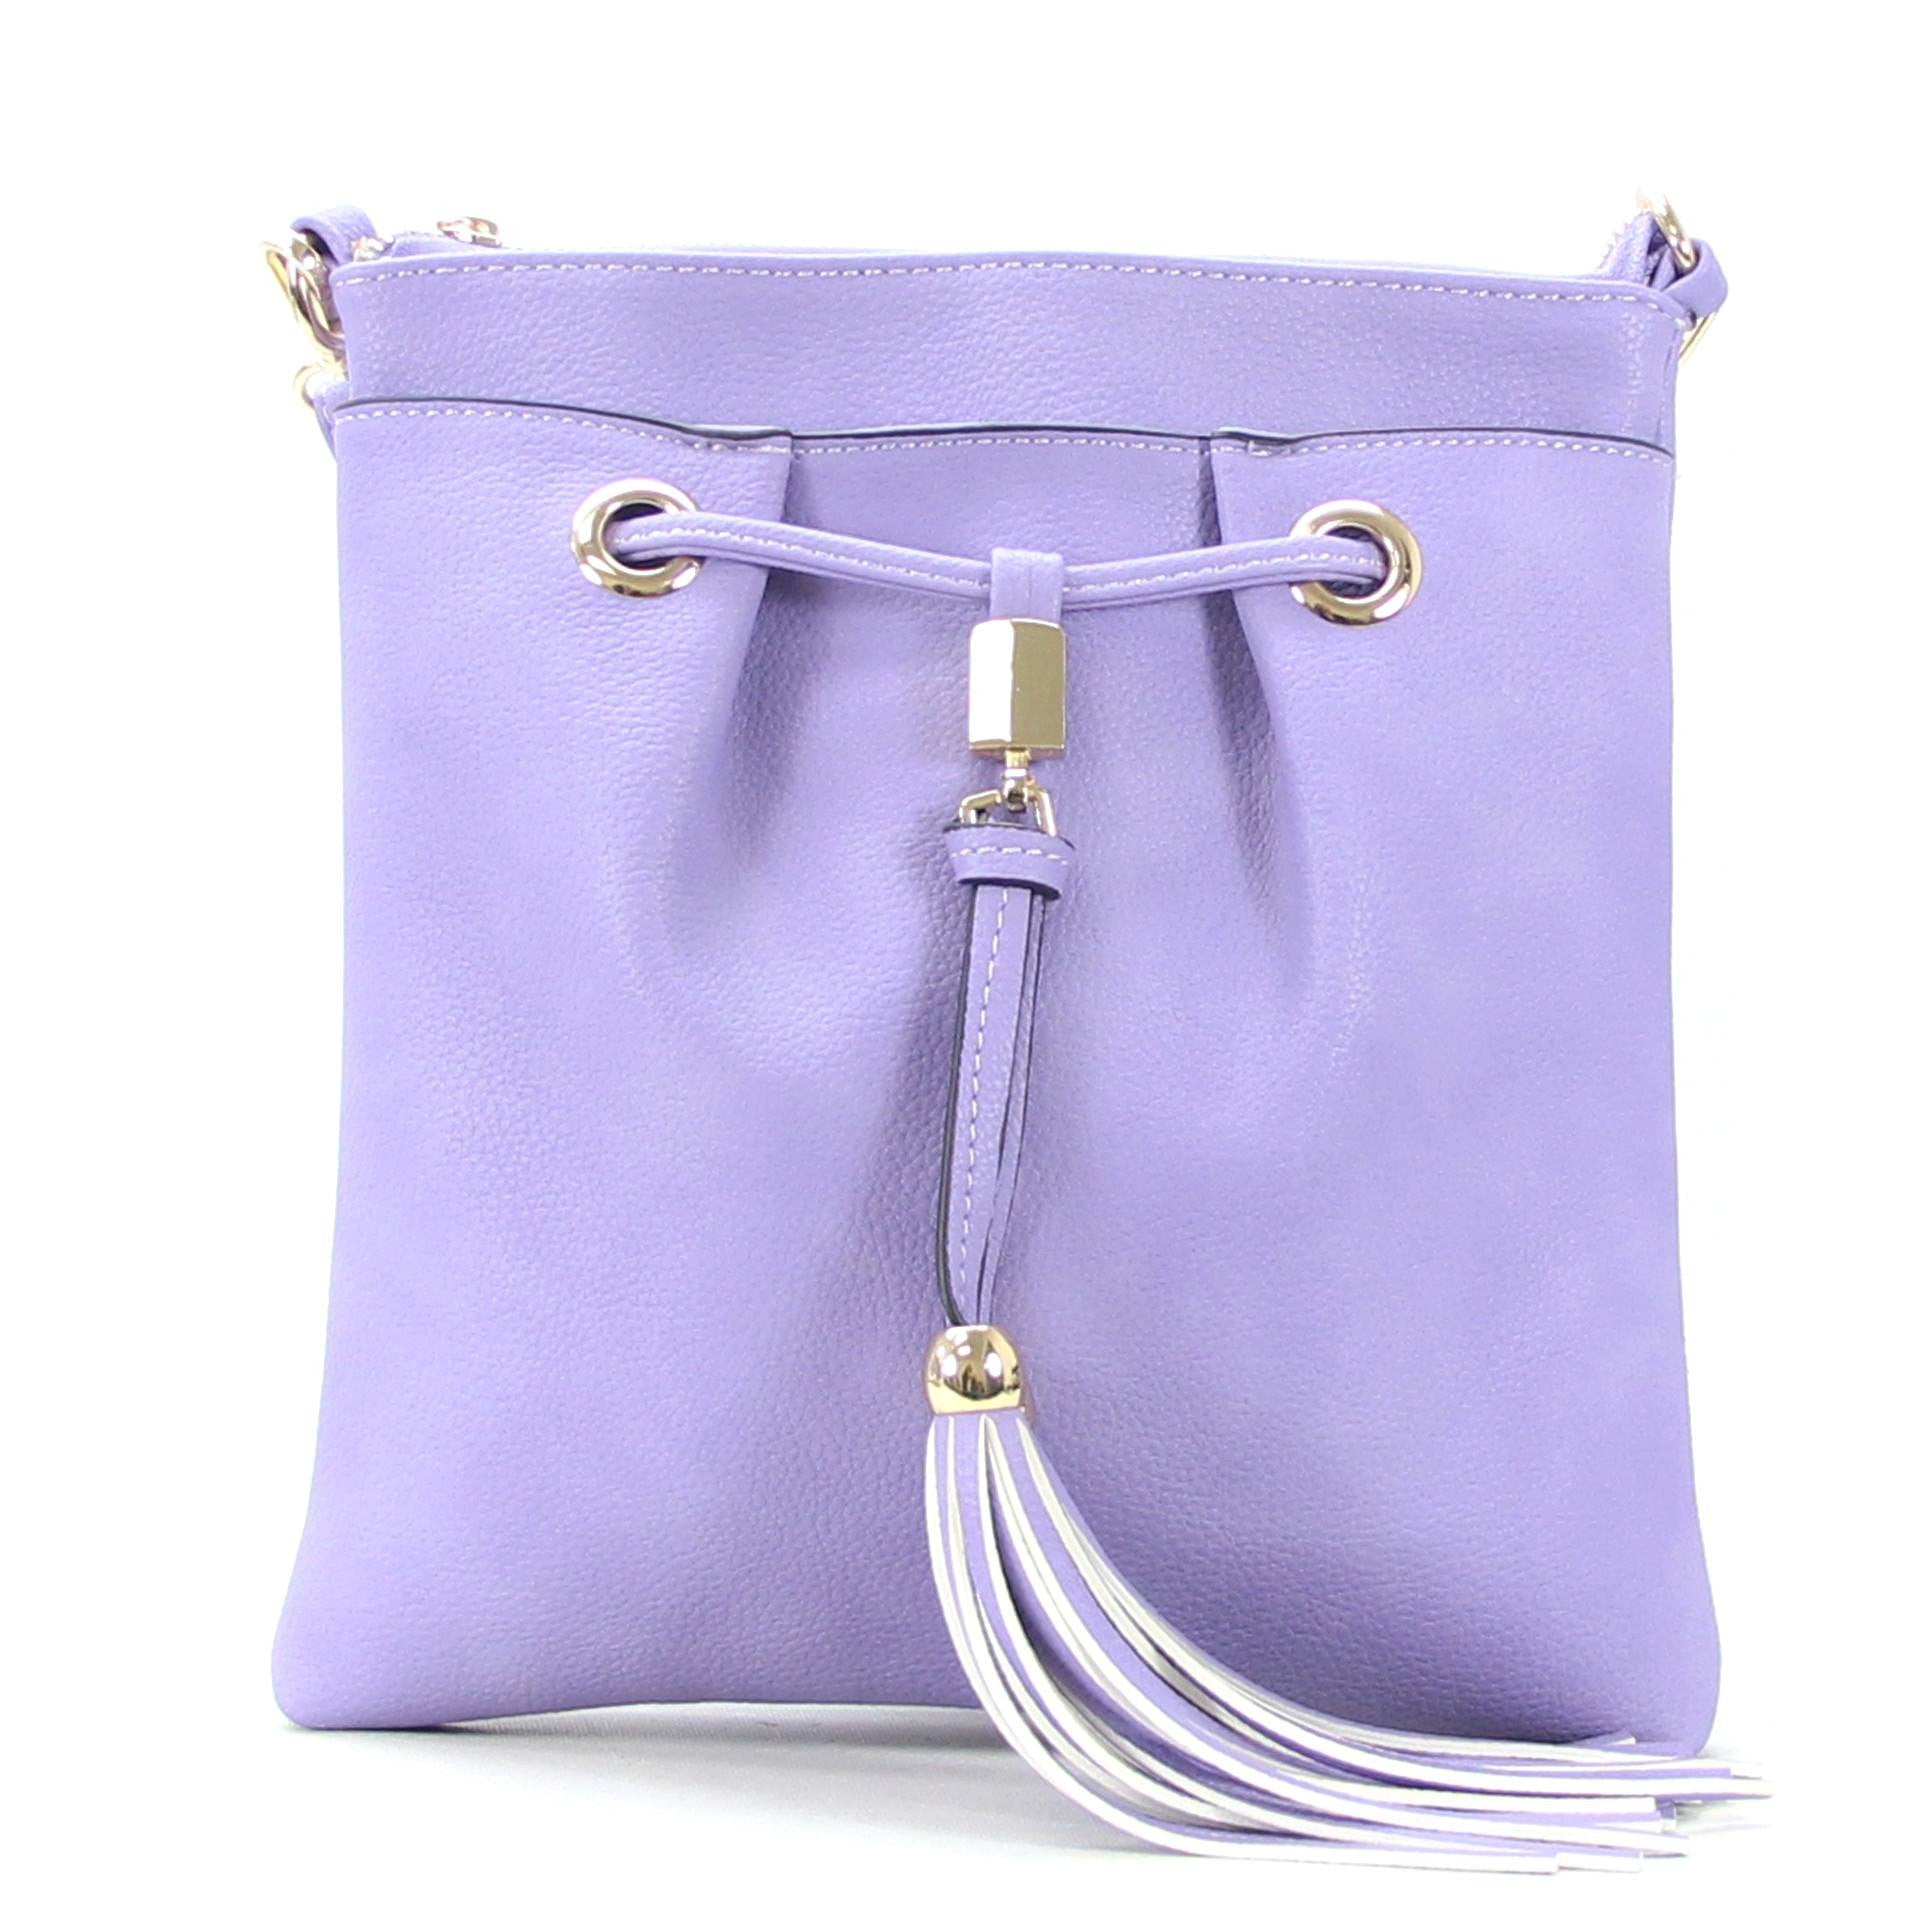 Robert Matthew Kaylee Crossbody Shoulder Bag In...